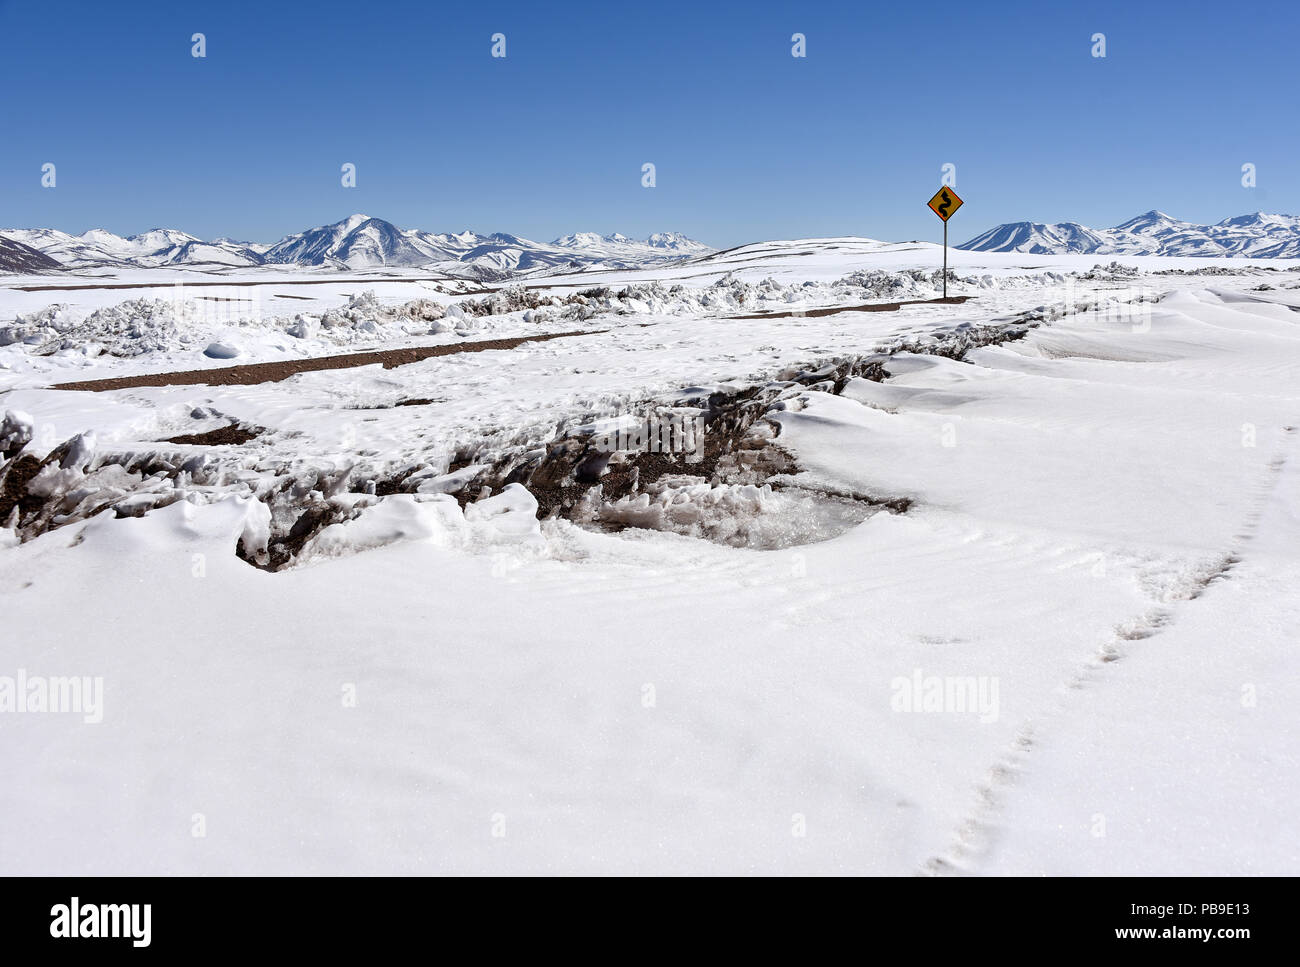 Snow-covered road through Atacama desert with road sign in front of Andes, Altiplano, Bolivia - Stock Image